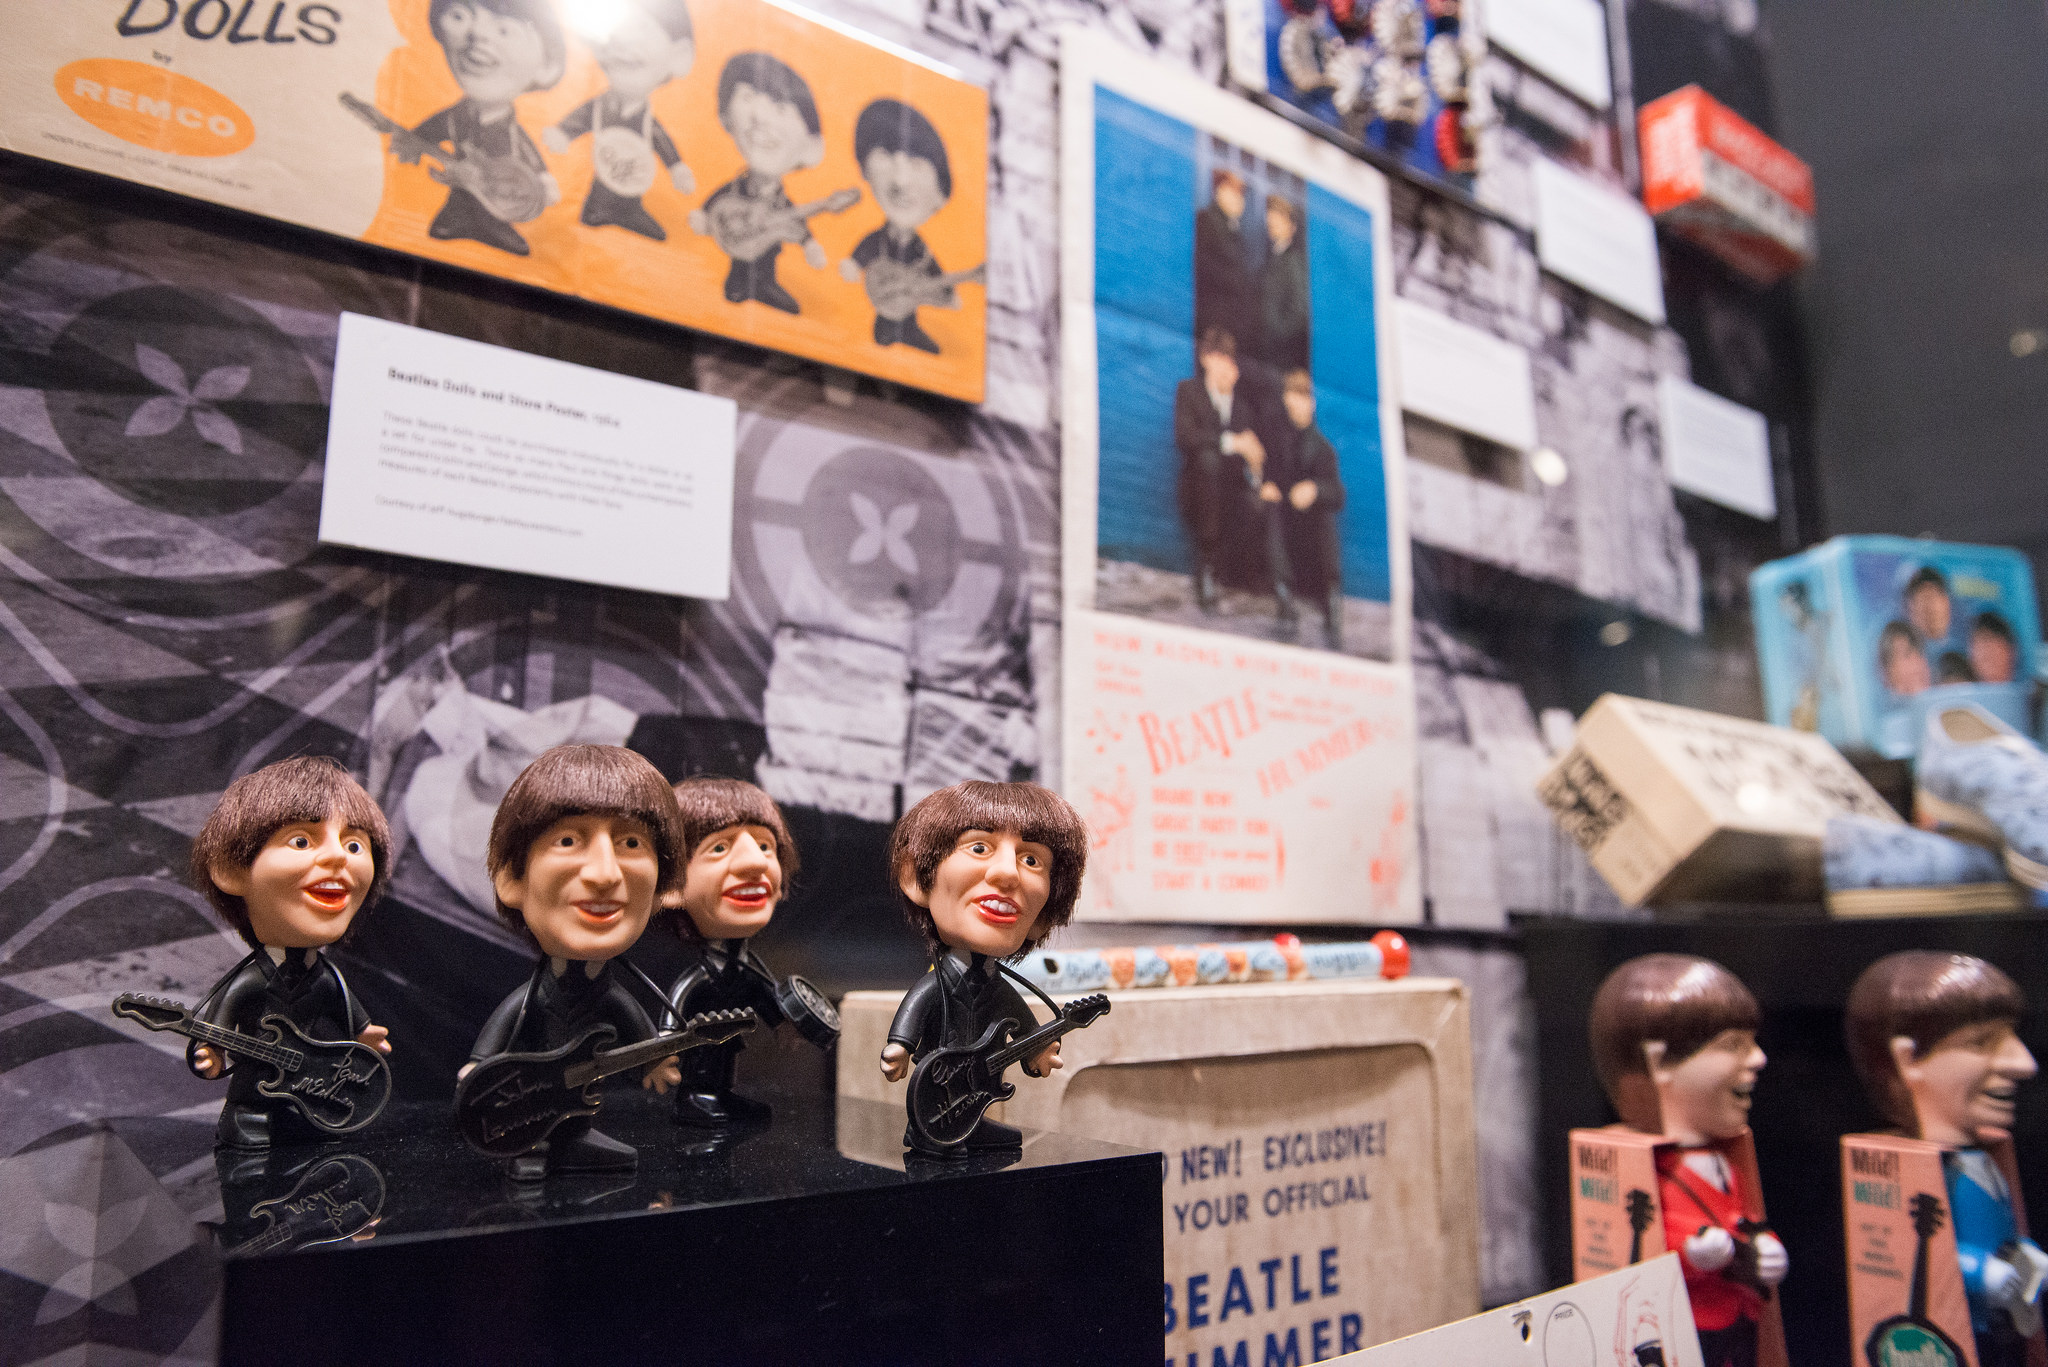 From a traveling exhibition featured at the Grammy Museum